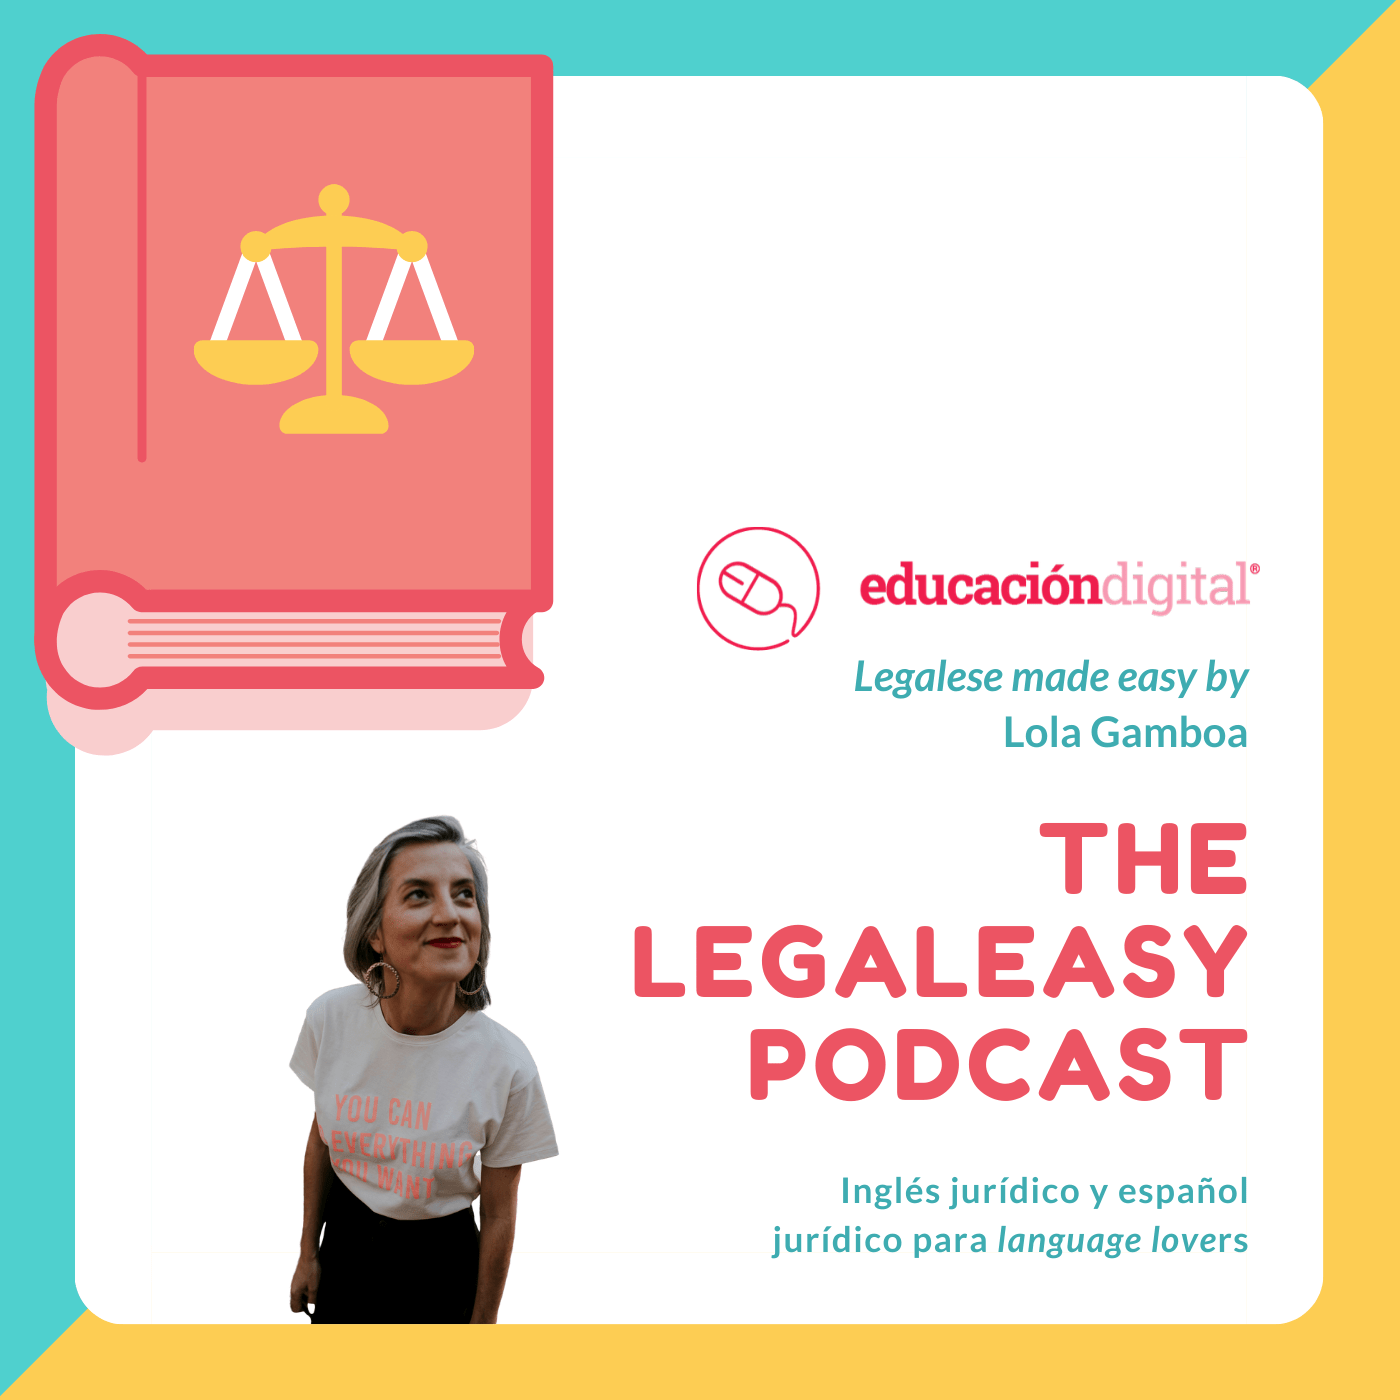 The Legaleasy Podcast